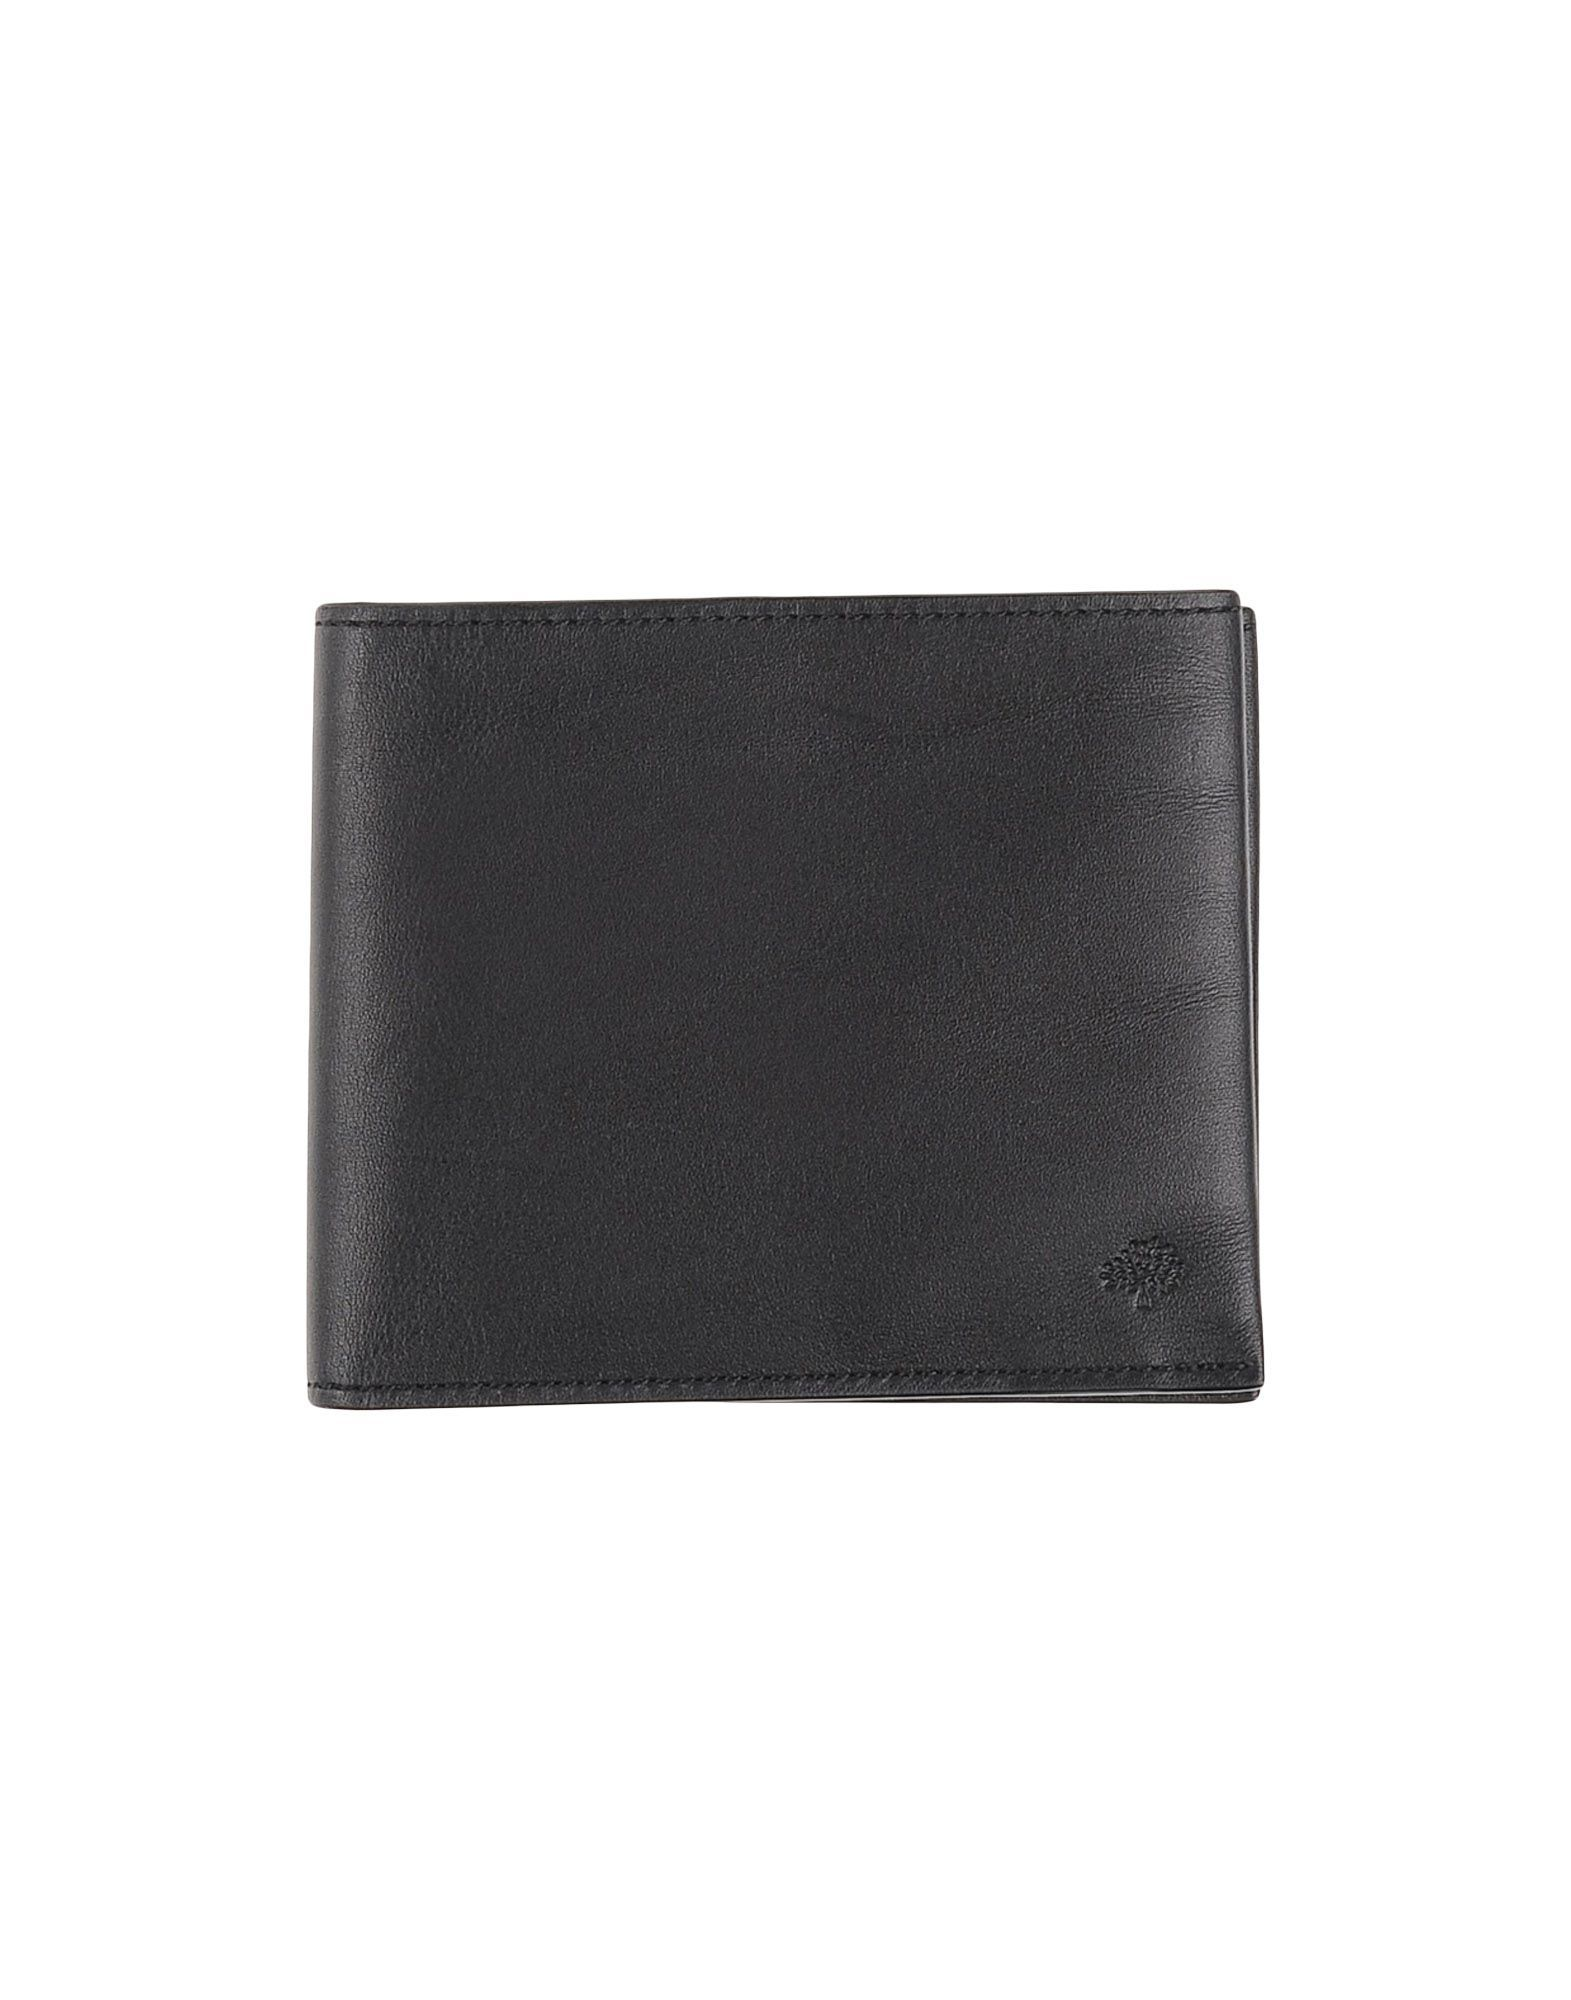 d0c41eae11 MULBERRY WALLETS.  mulberry